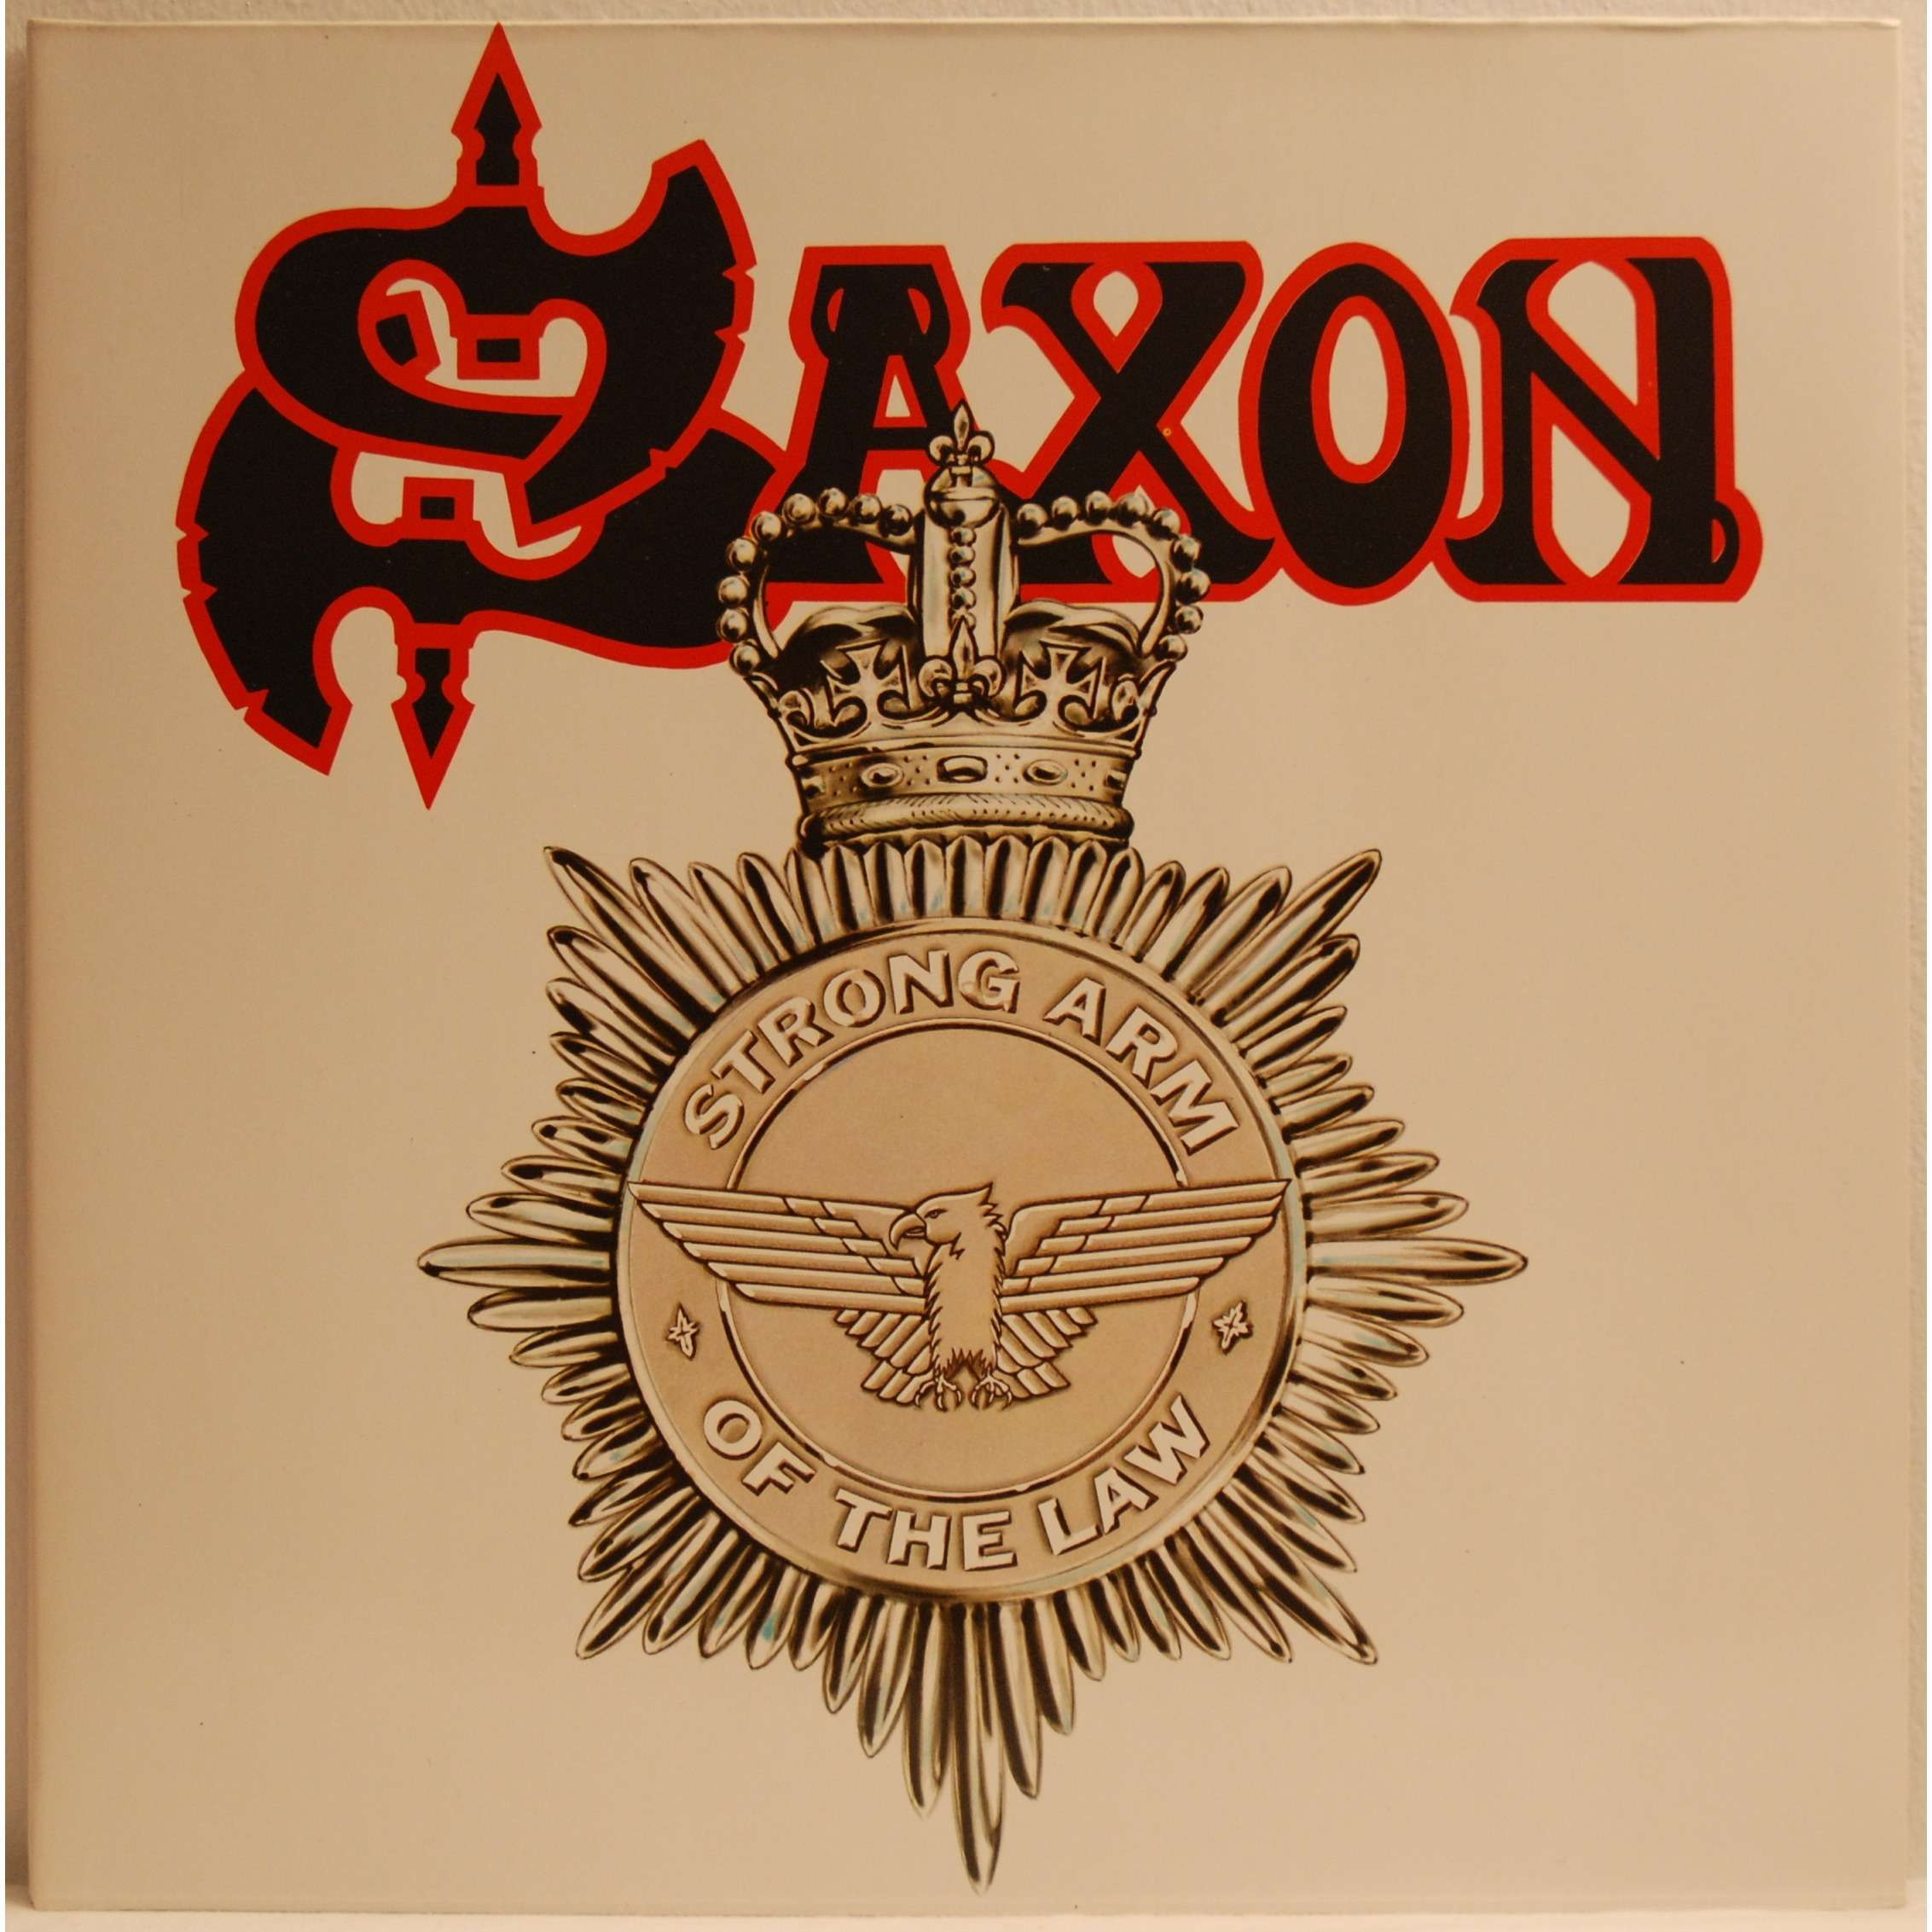 SAXON - Strong Arm Of The Law (1980)-[HEAVY METAL] 2933621293